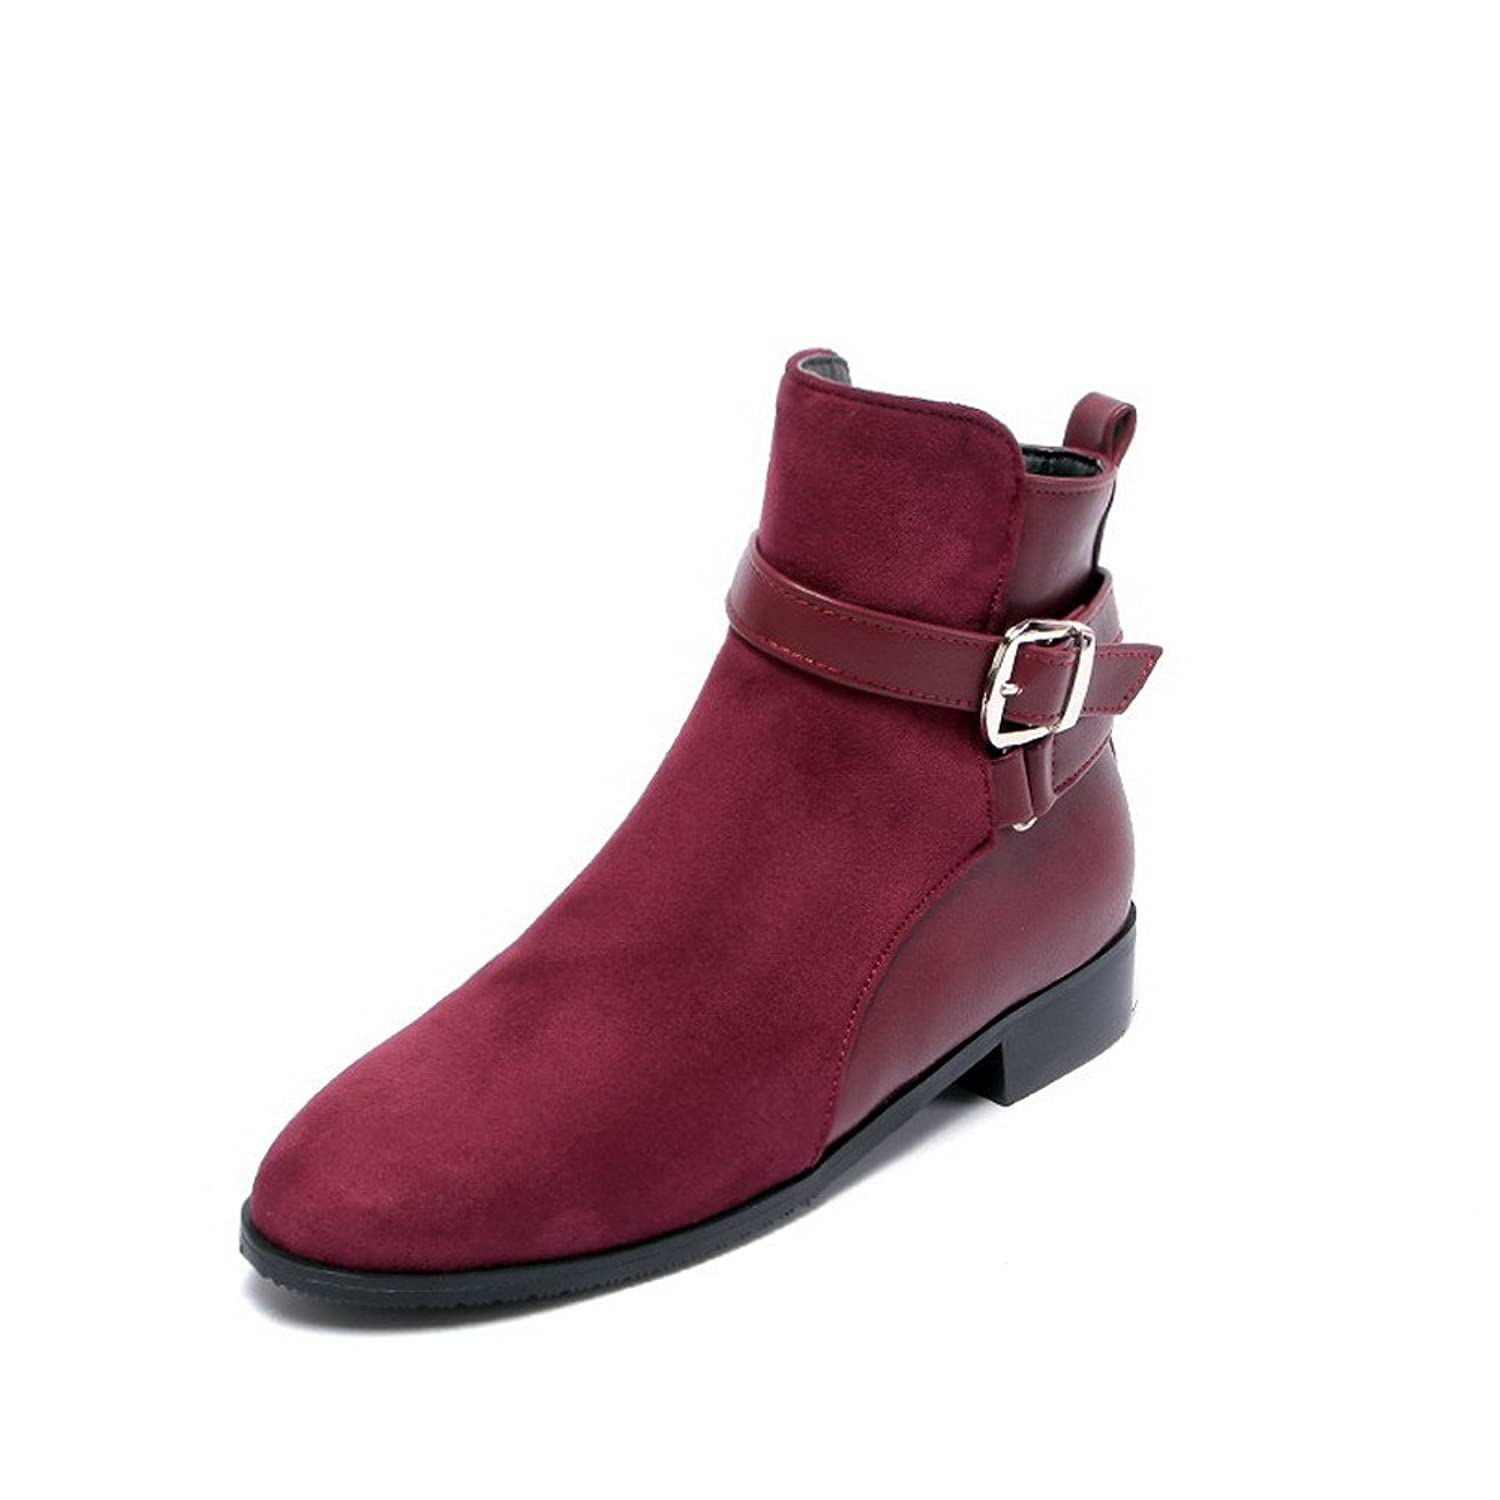 AllhqFashion Women's Low-Heels Solid Round Closed Toe Soft Material Zipper Boots